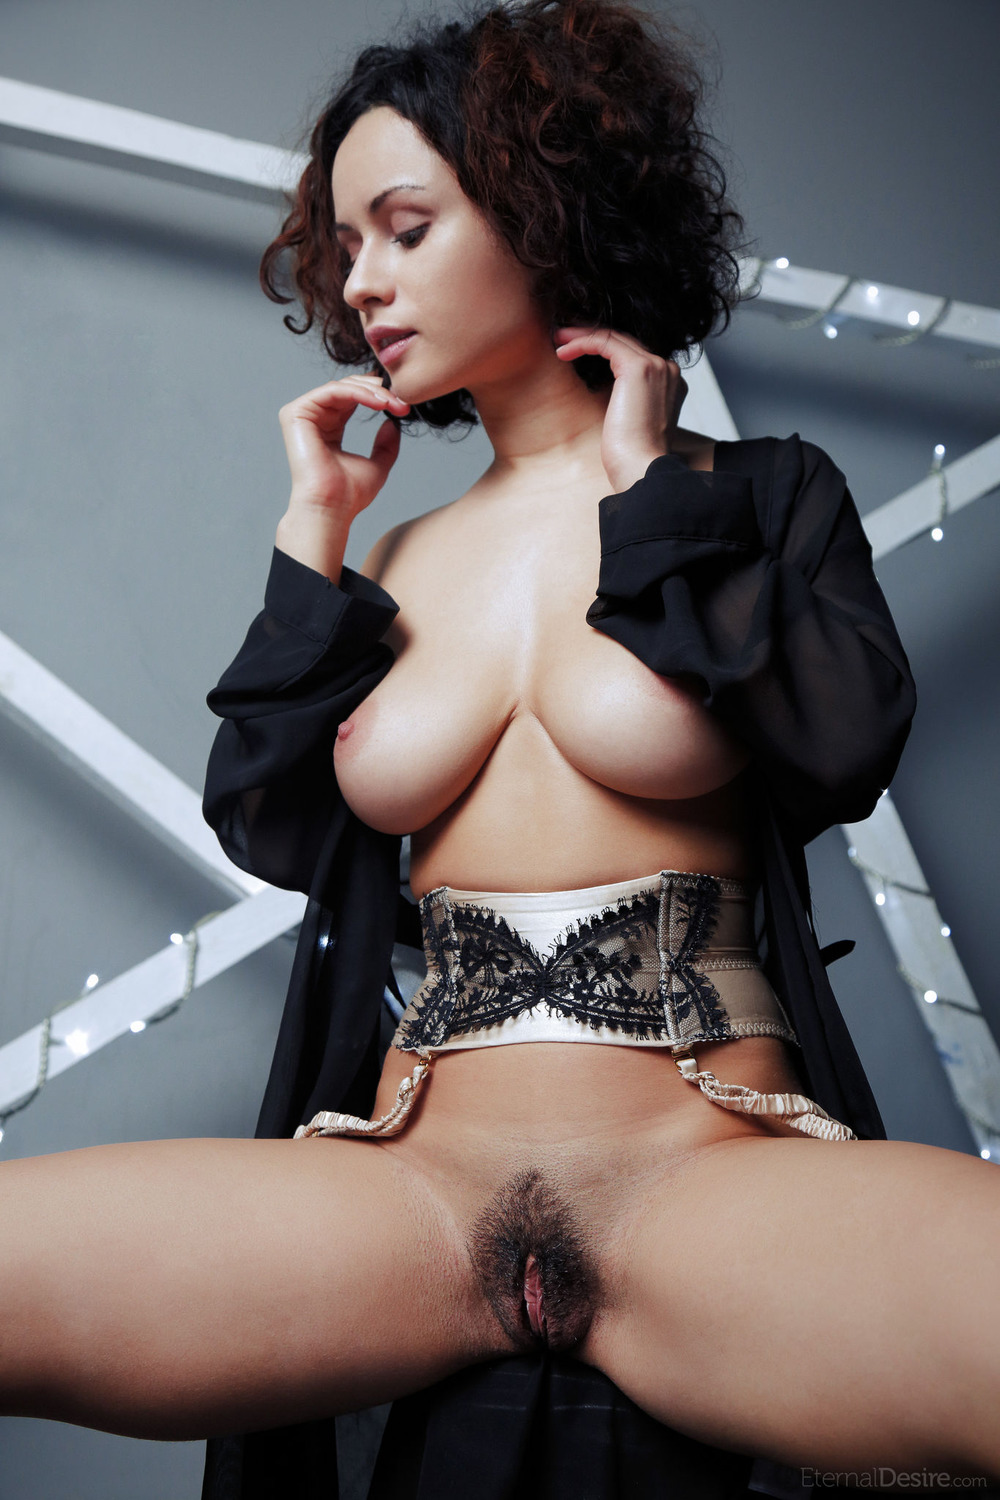 pammie lee exotic beauty at nightdreambabe